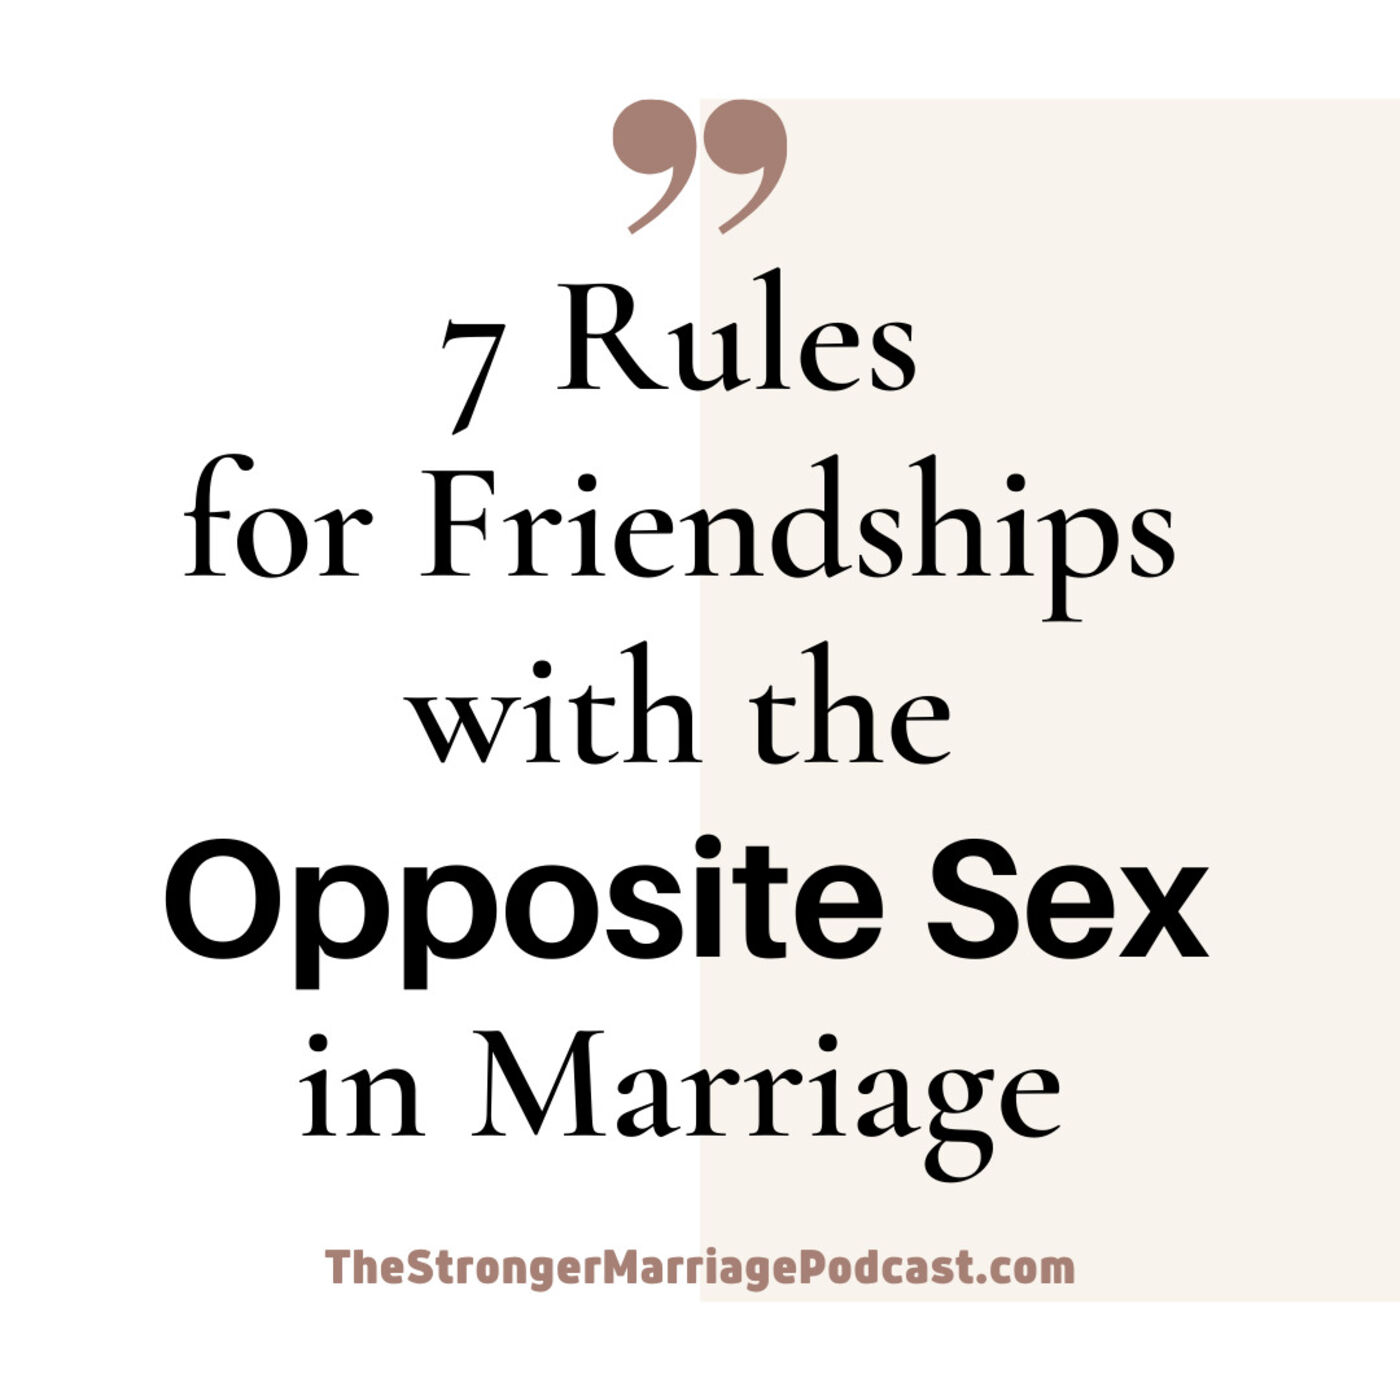 7 Rules for Friendships with the Opposite Sex in Marriage